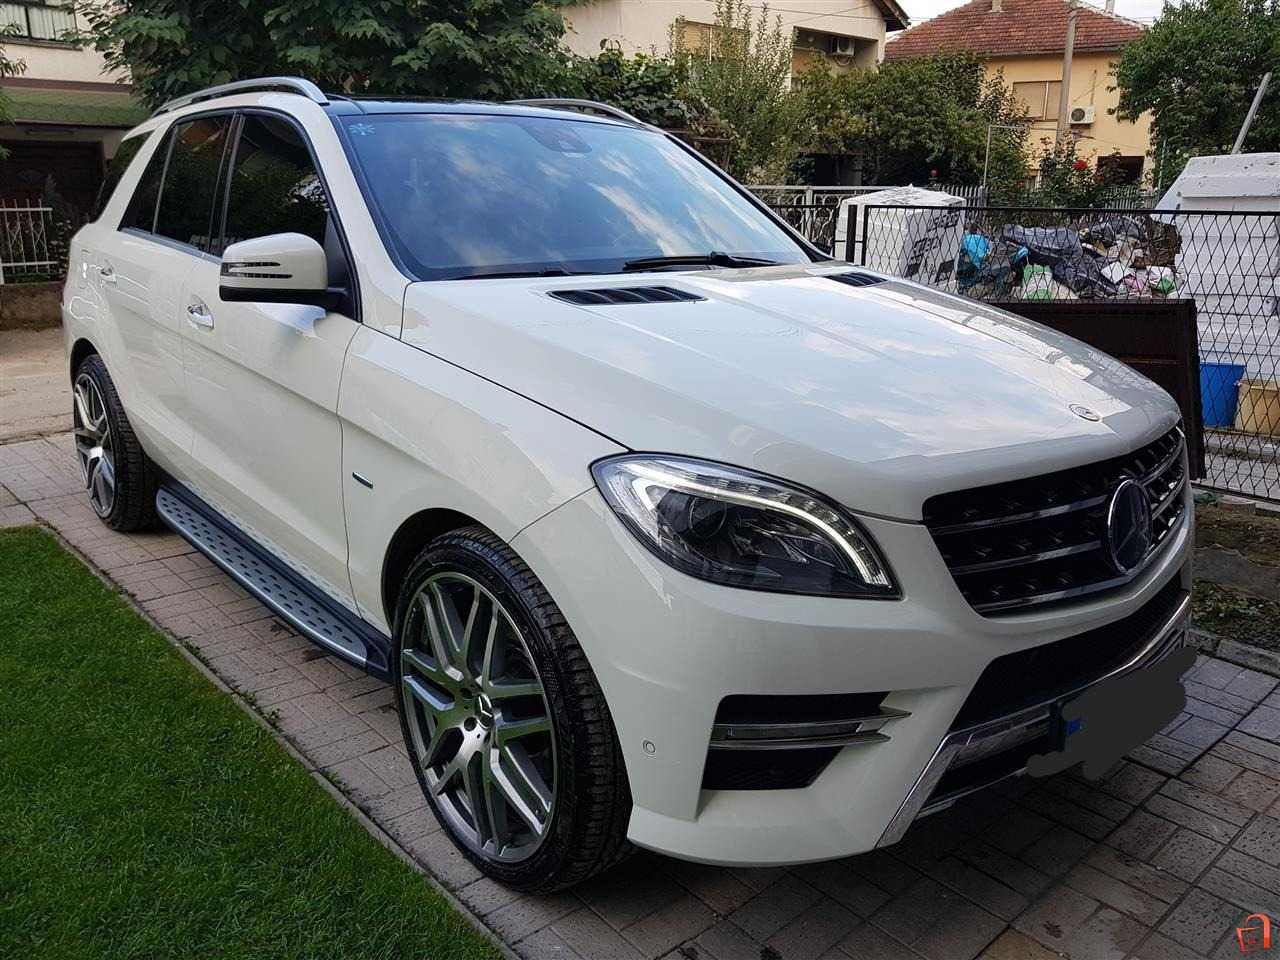 mercedes ml 350 cdi amg paket 2012. Black Bedroom Furniture Sets. Home Design Ideas